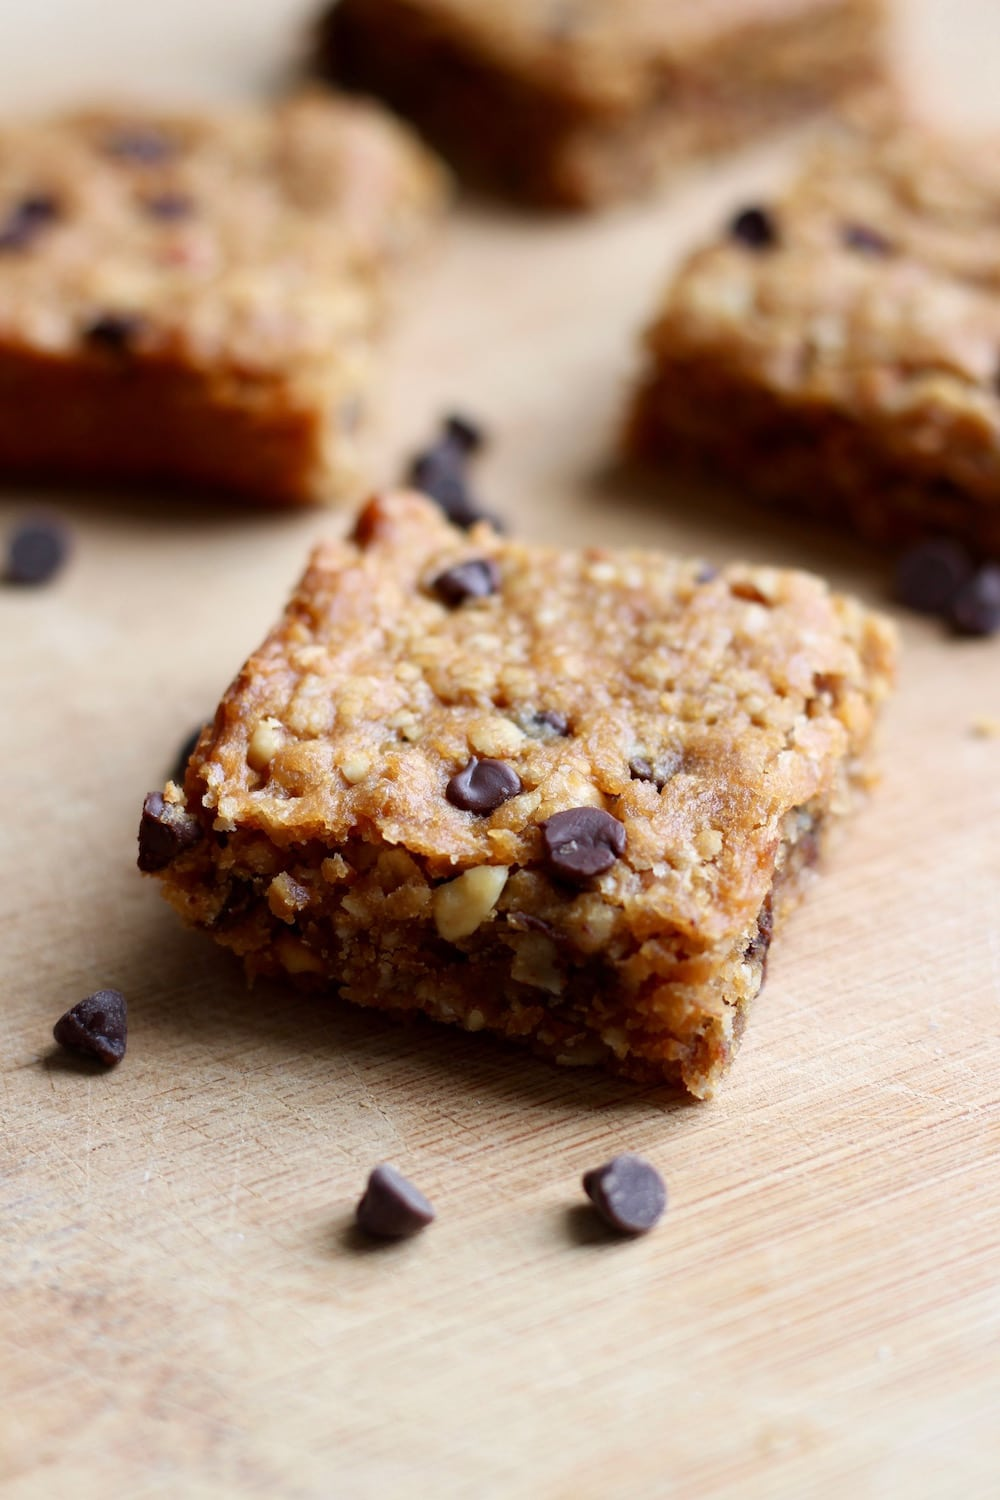 Gluten Free Peanut Butter Chocolate Chip Oatmeal Bars | The ...